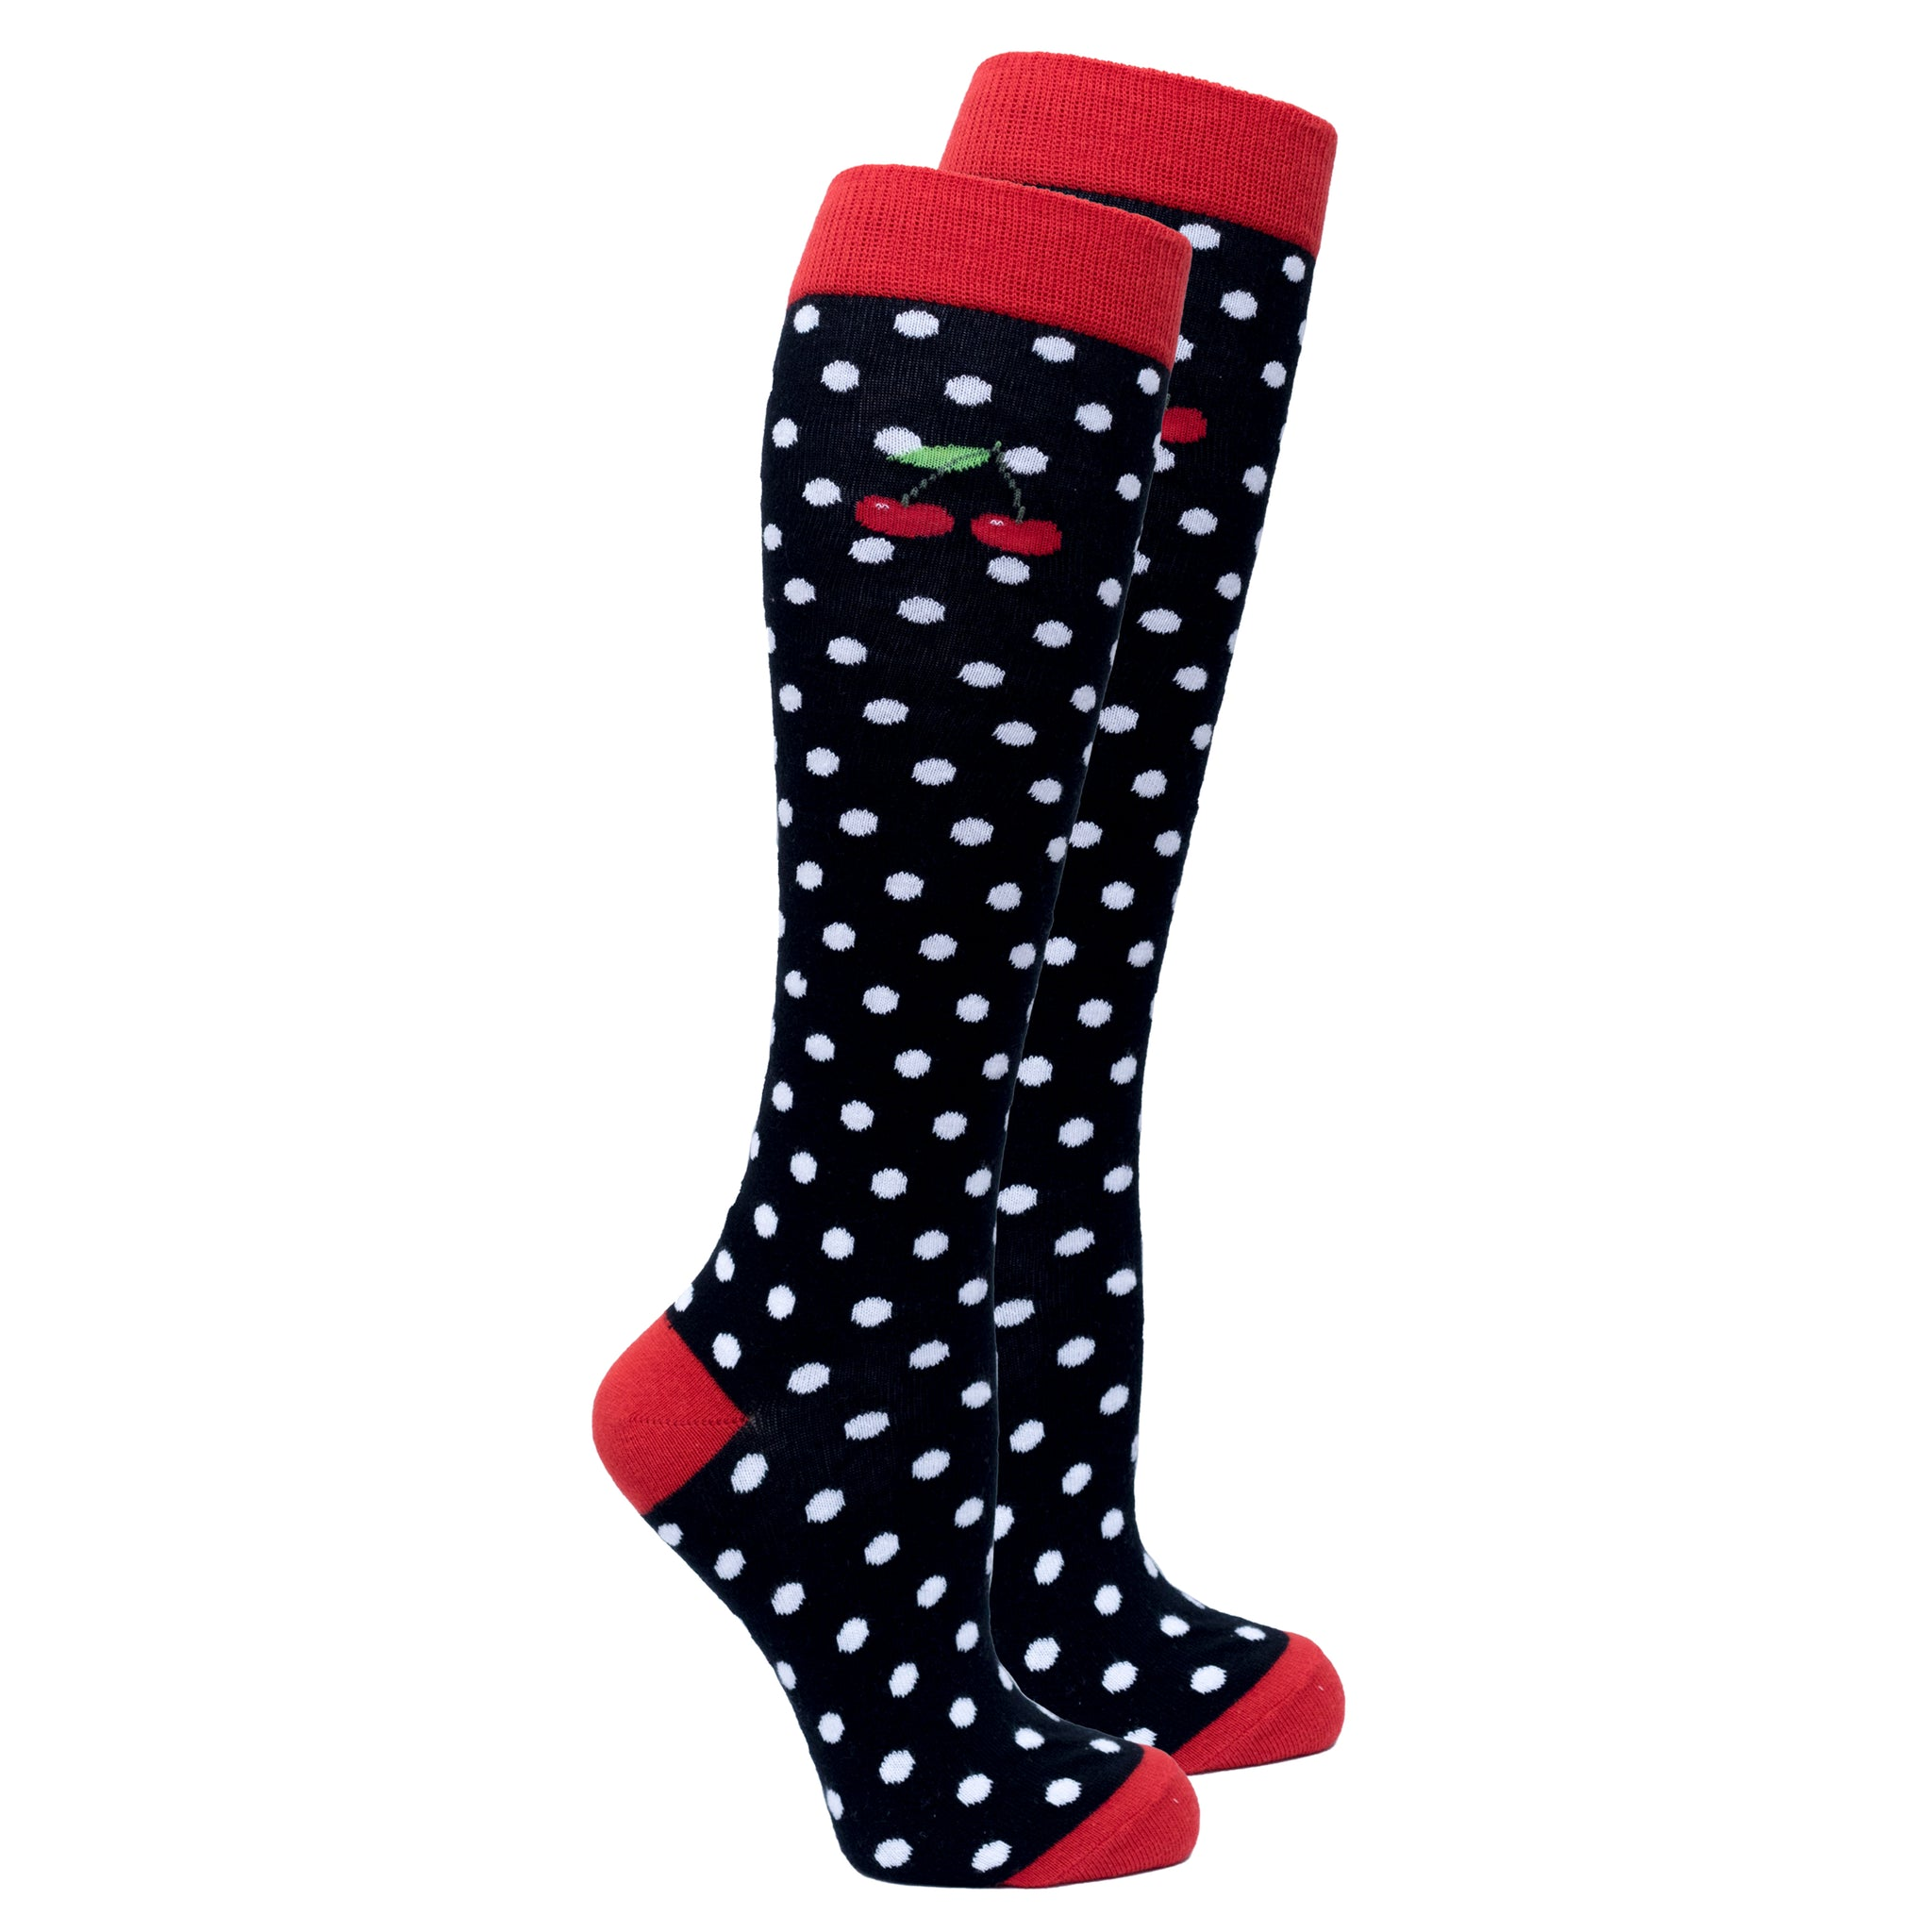 Women's Cherry Dot Knee High Socks